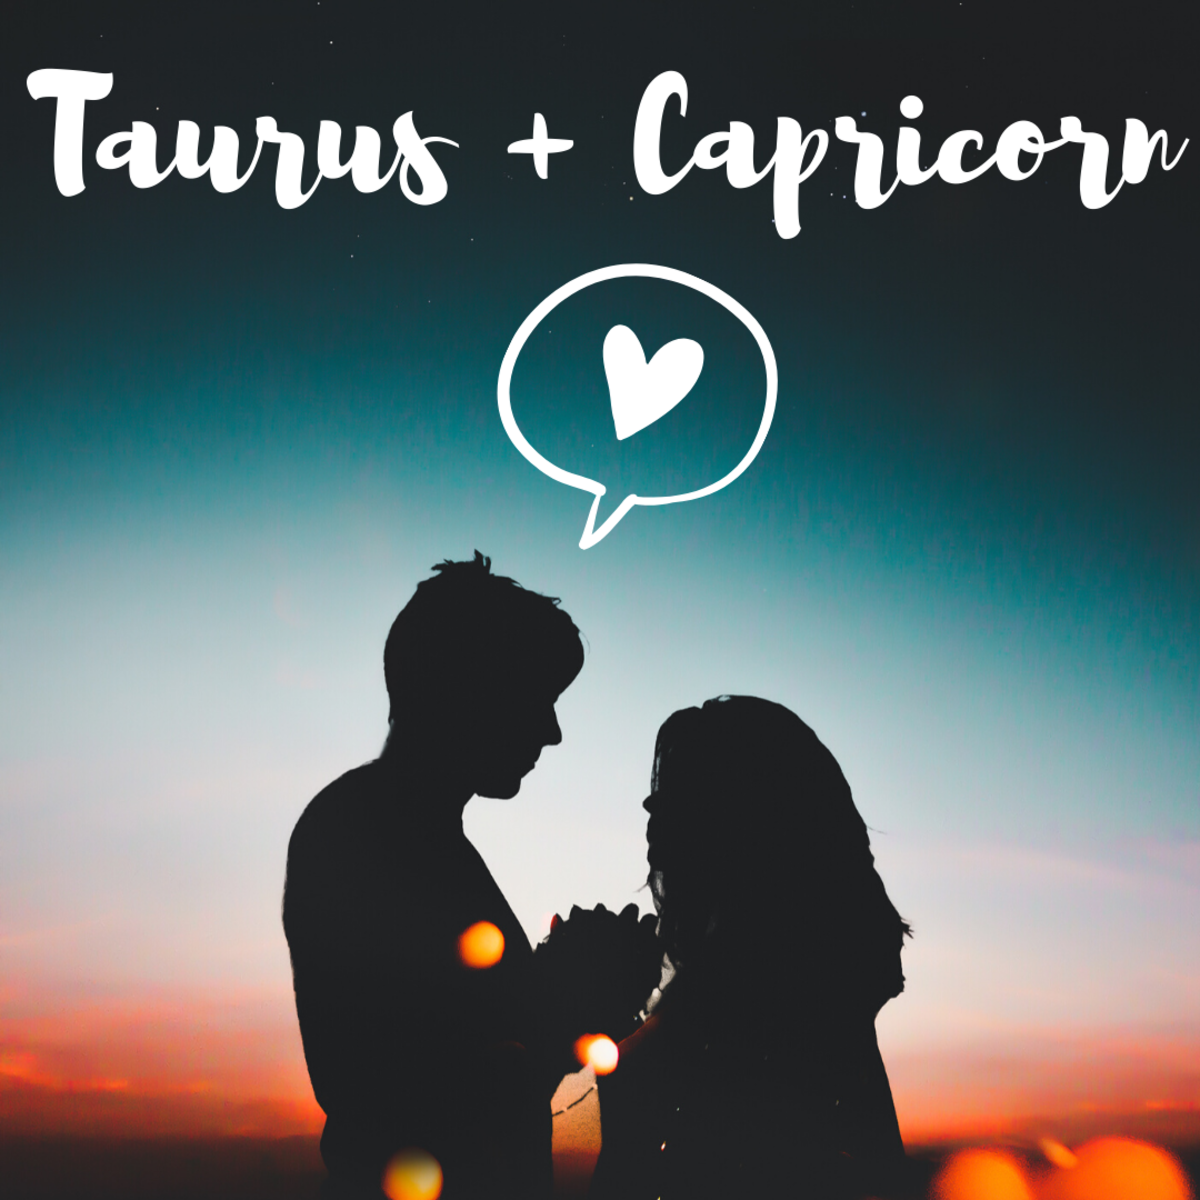 Spring and winter meet when Taurus and Capricorn get together, creating an undeniable and indelible bond.